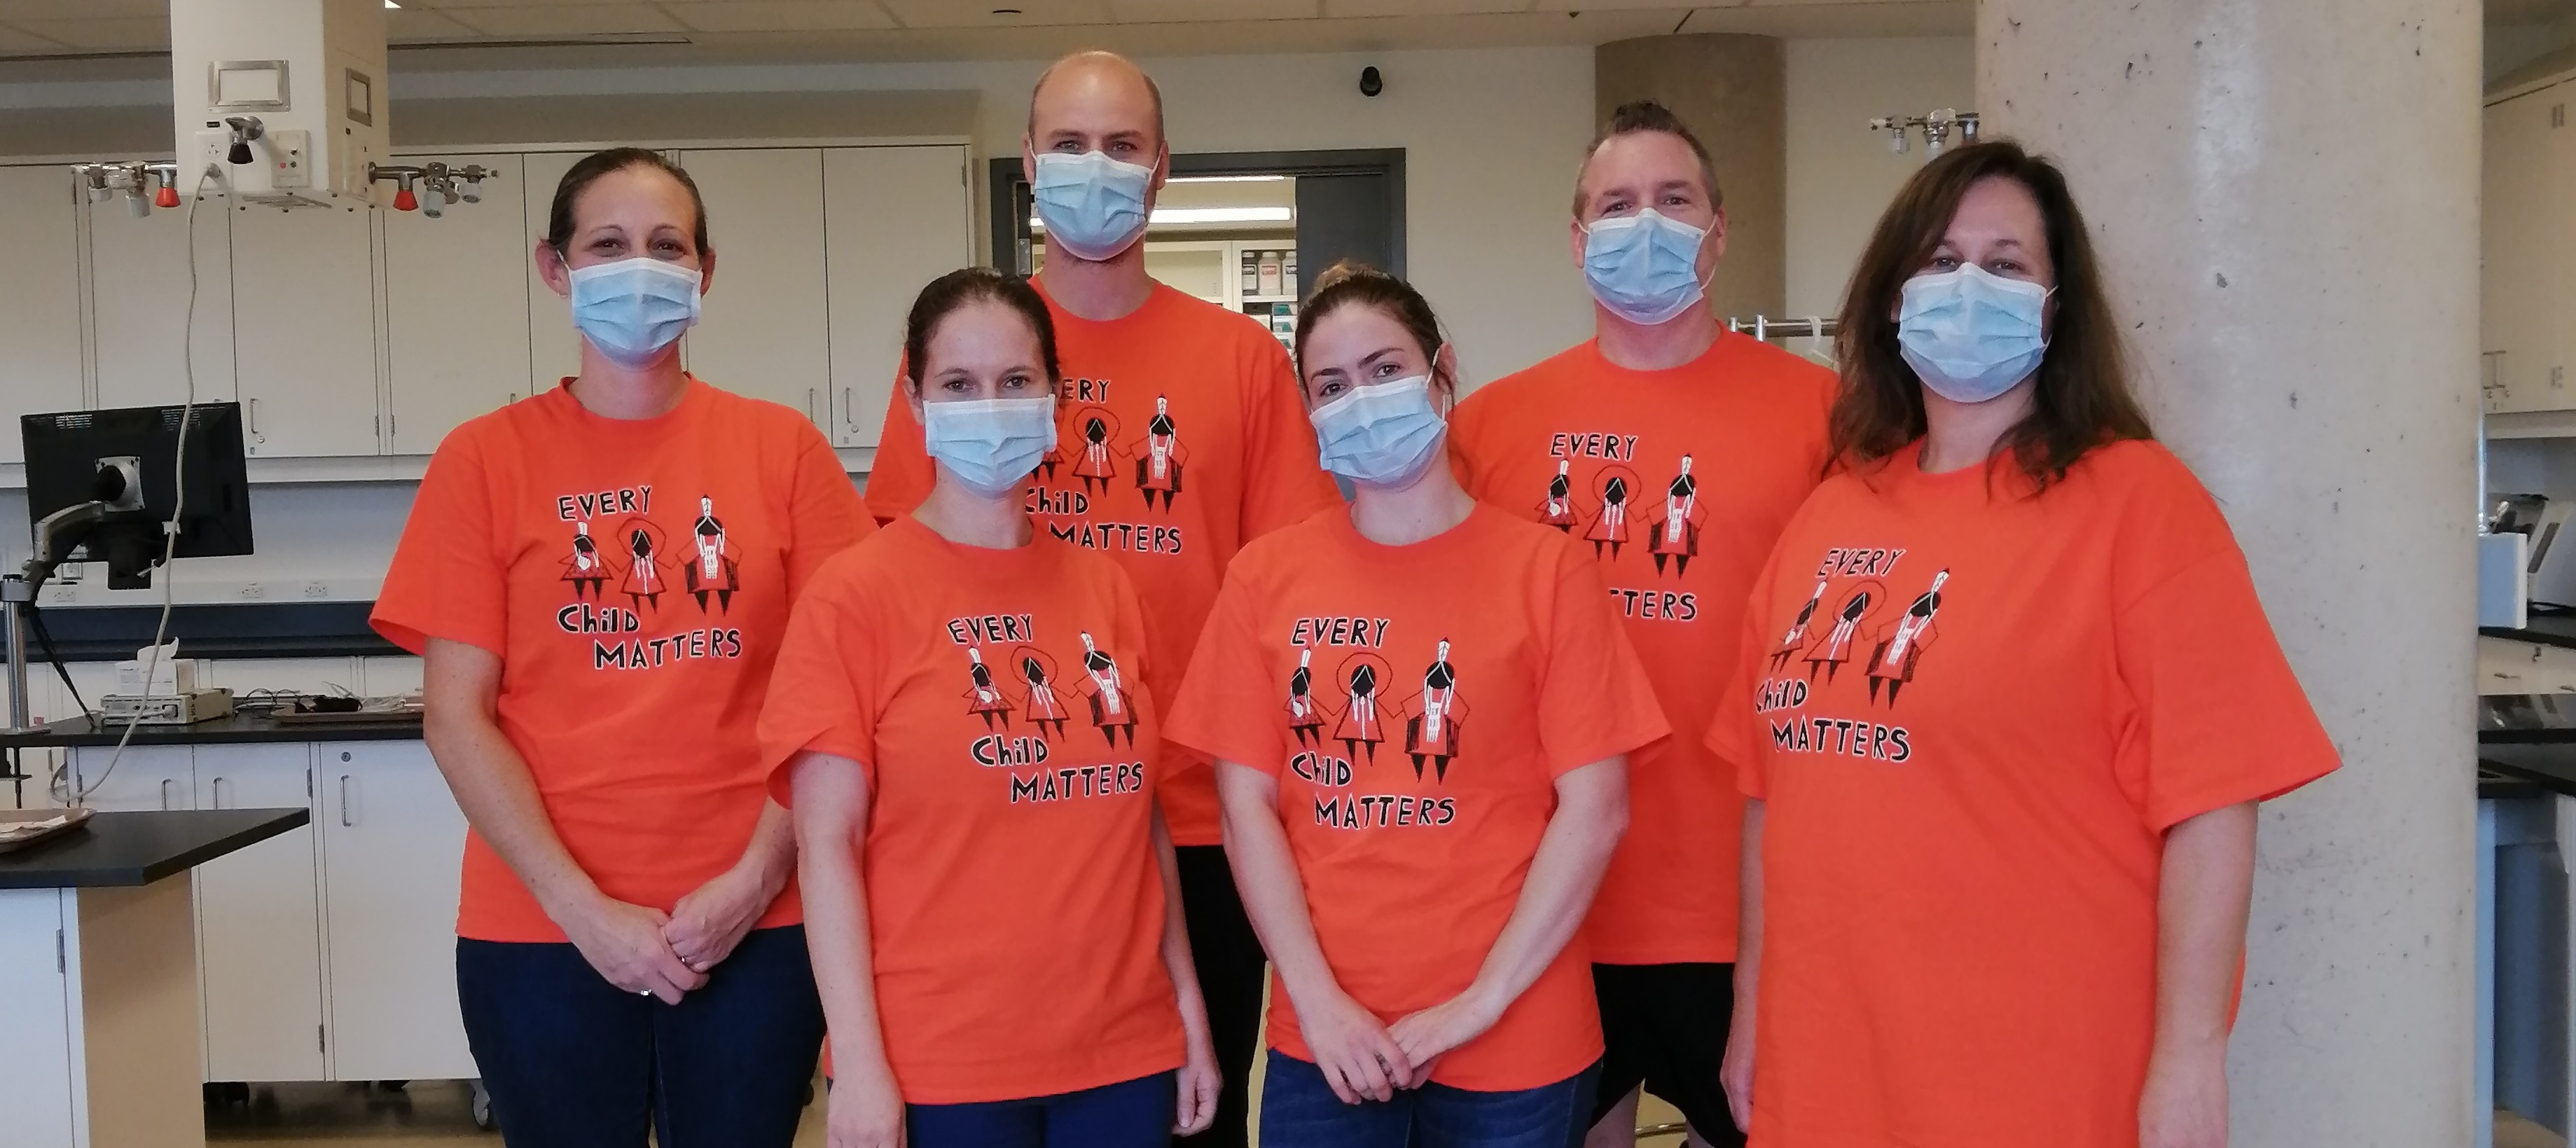 Six staff members are wearing orange t-shirts that read Every Child Matters